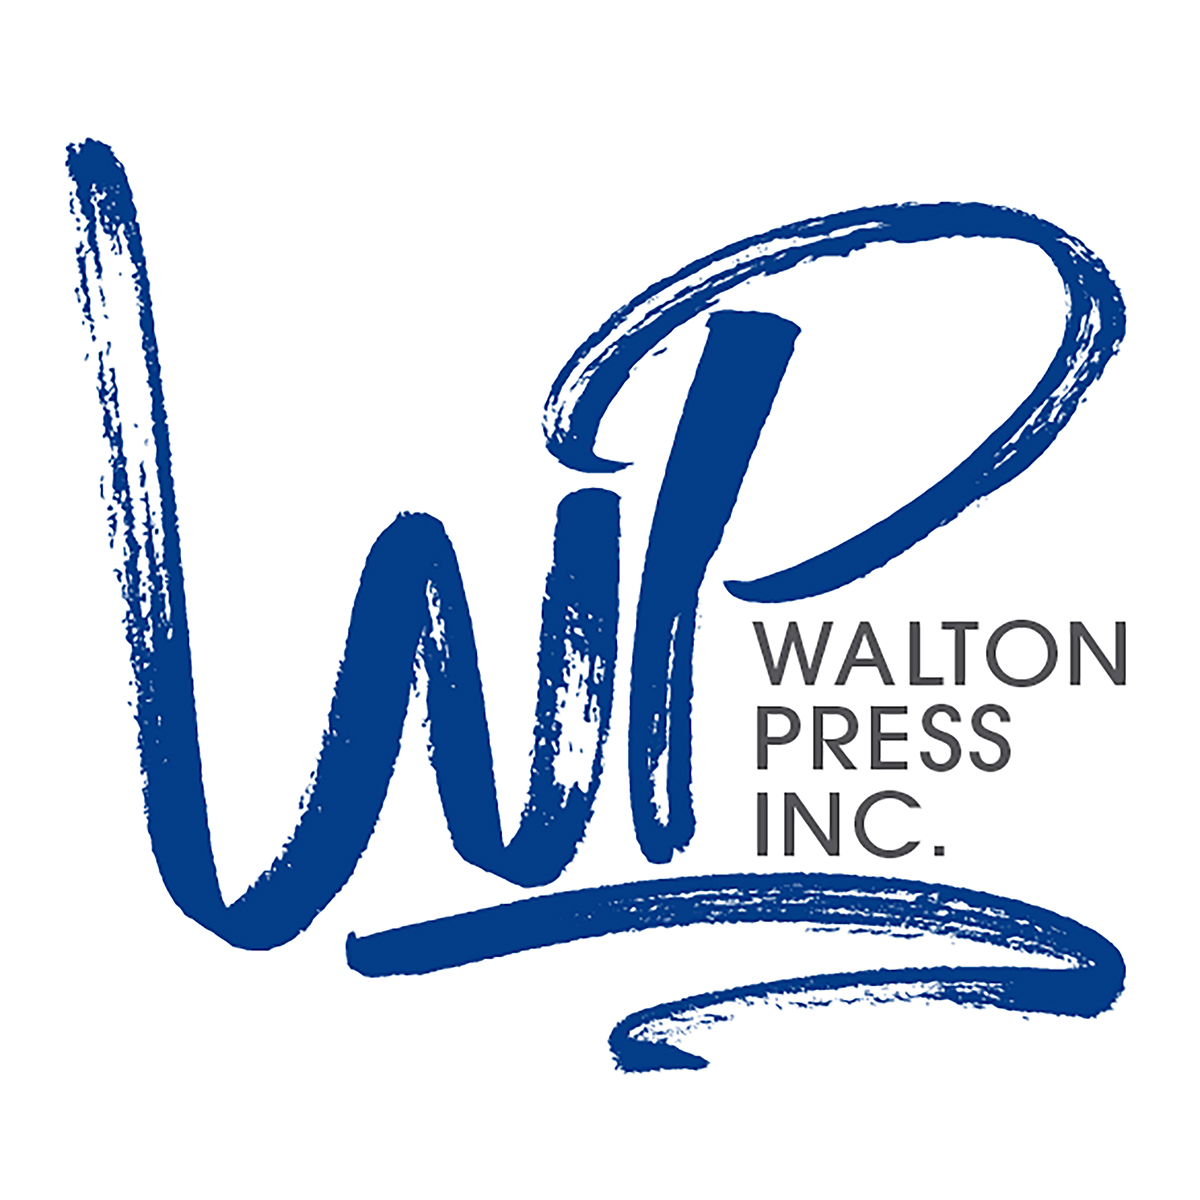 Durst P5 350 Advances Walton Press Print Offering Expansion